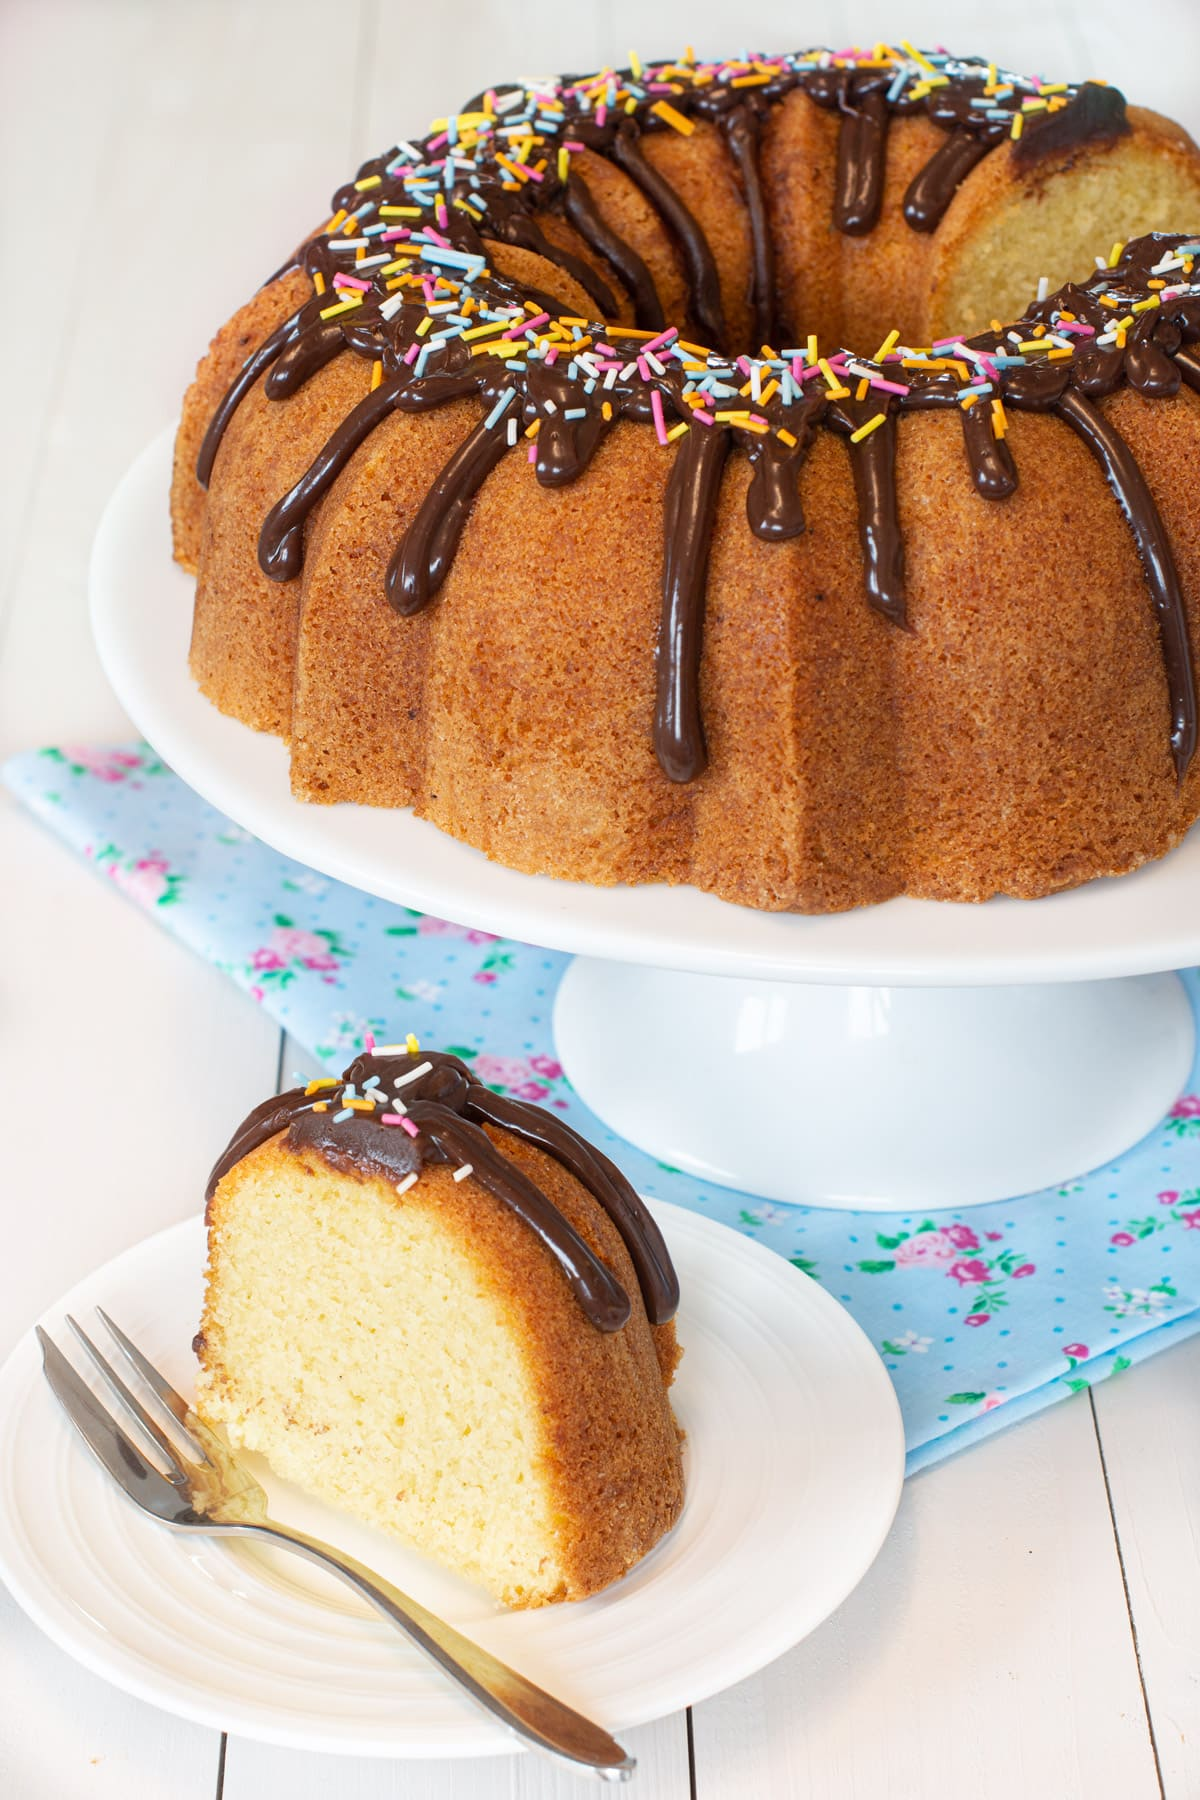 A vanilla bundt cake with chocolate icing and sprinkles. There's a slice remove which is on a plate.